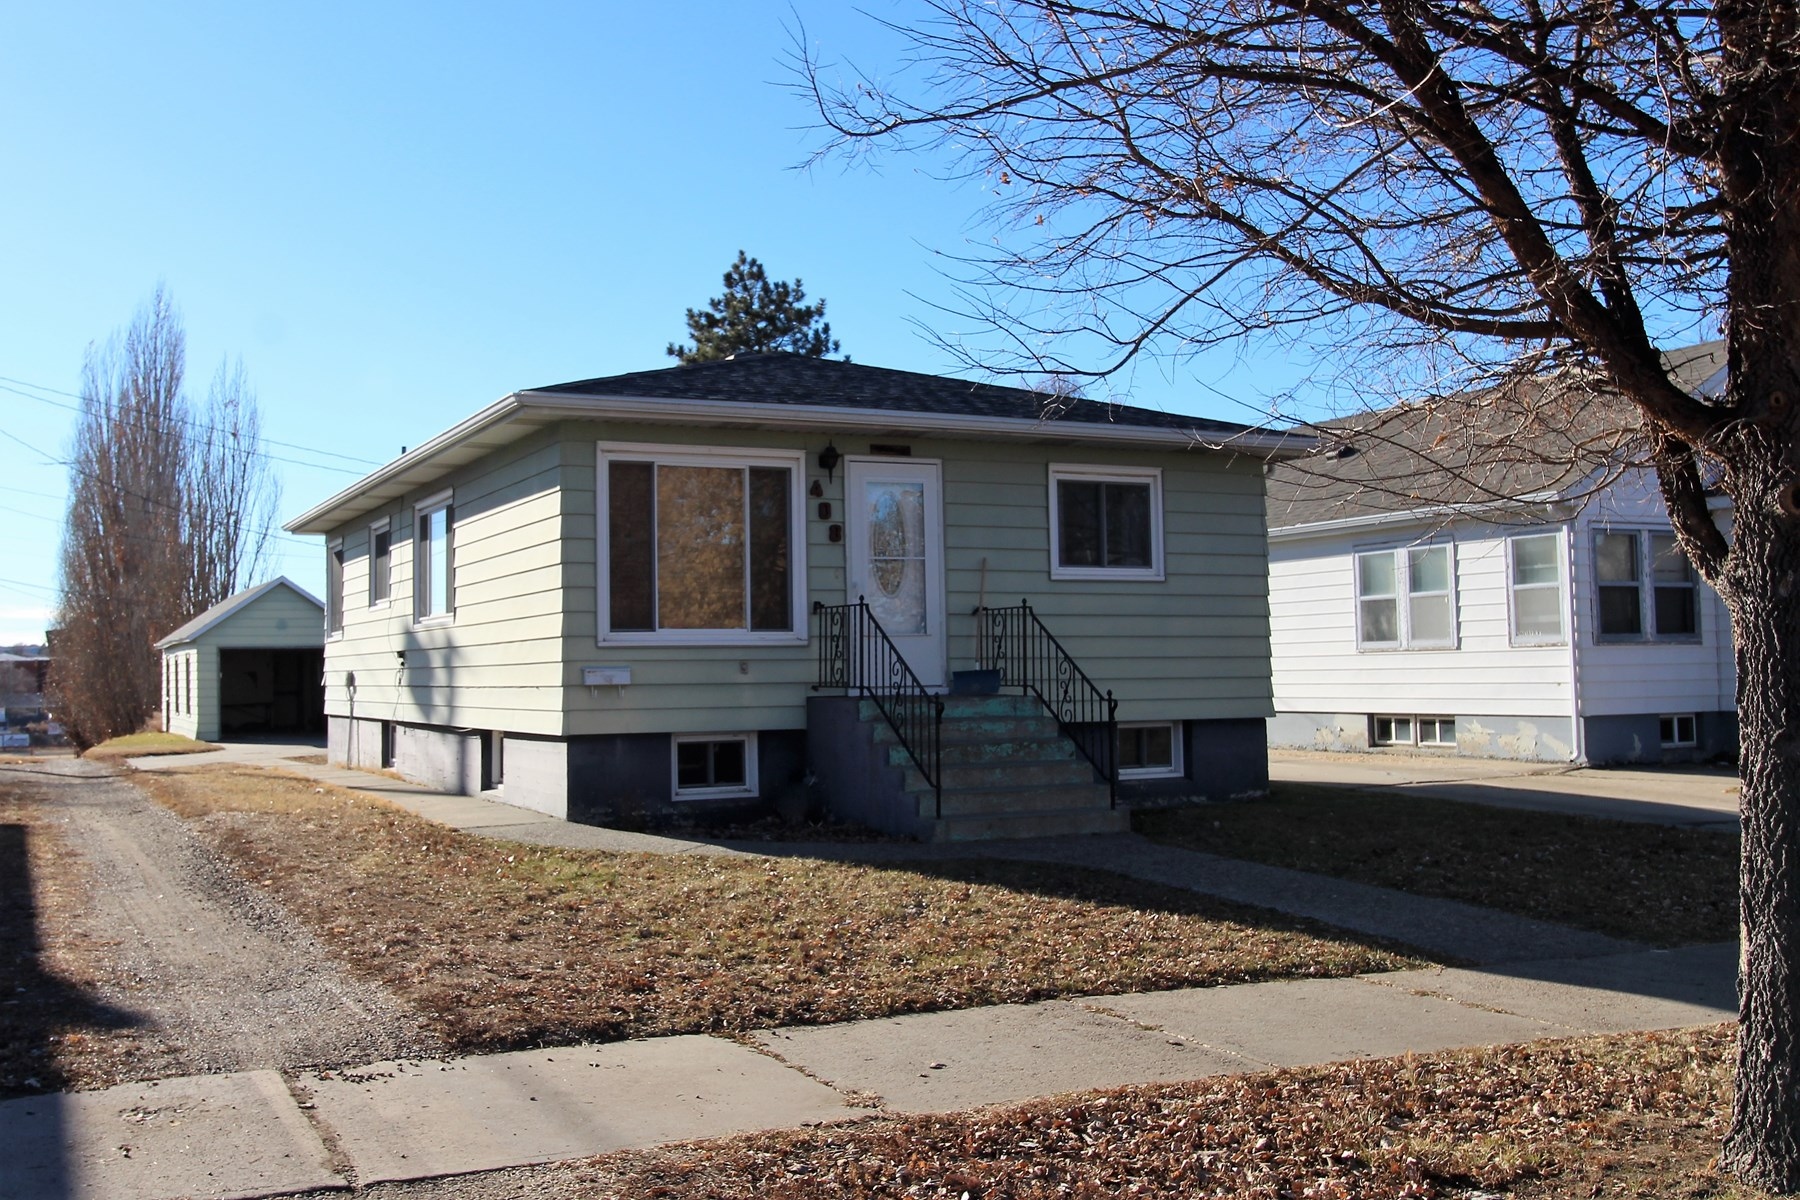 2/3 bedroom 1 bath home for sale - Great investment property